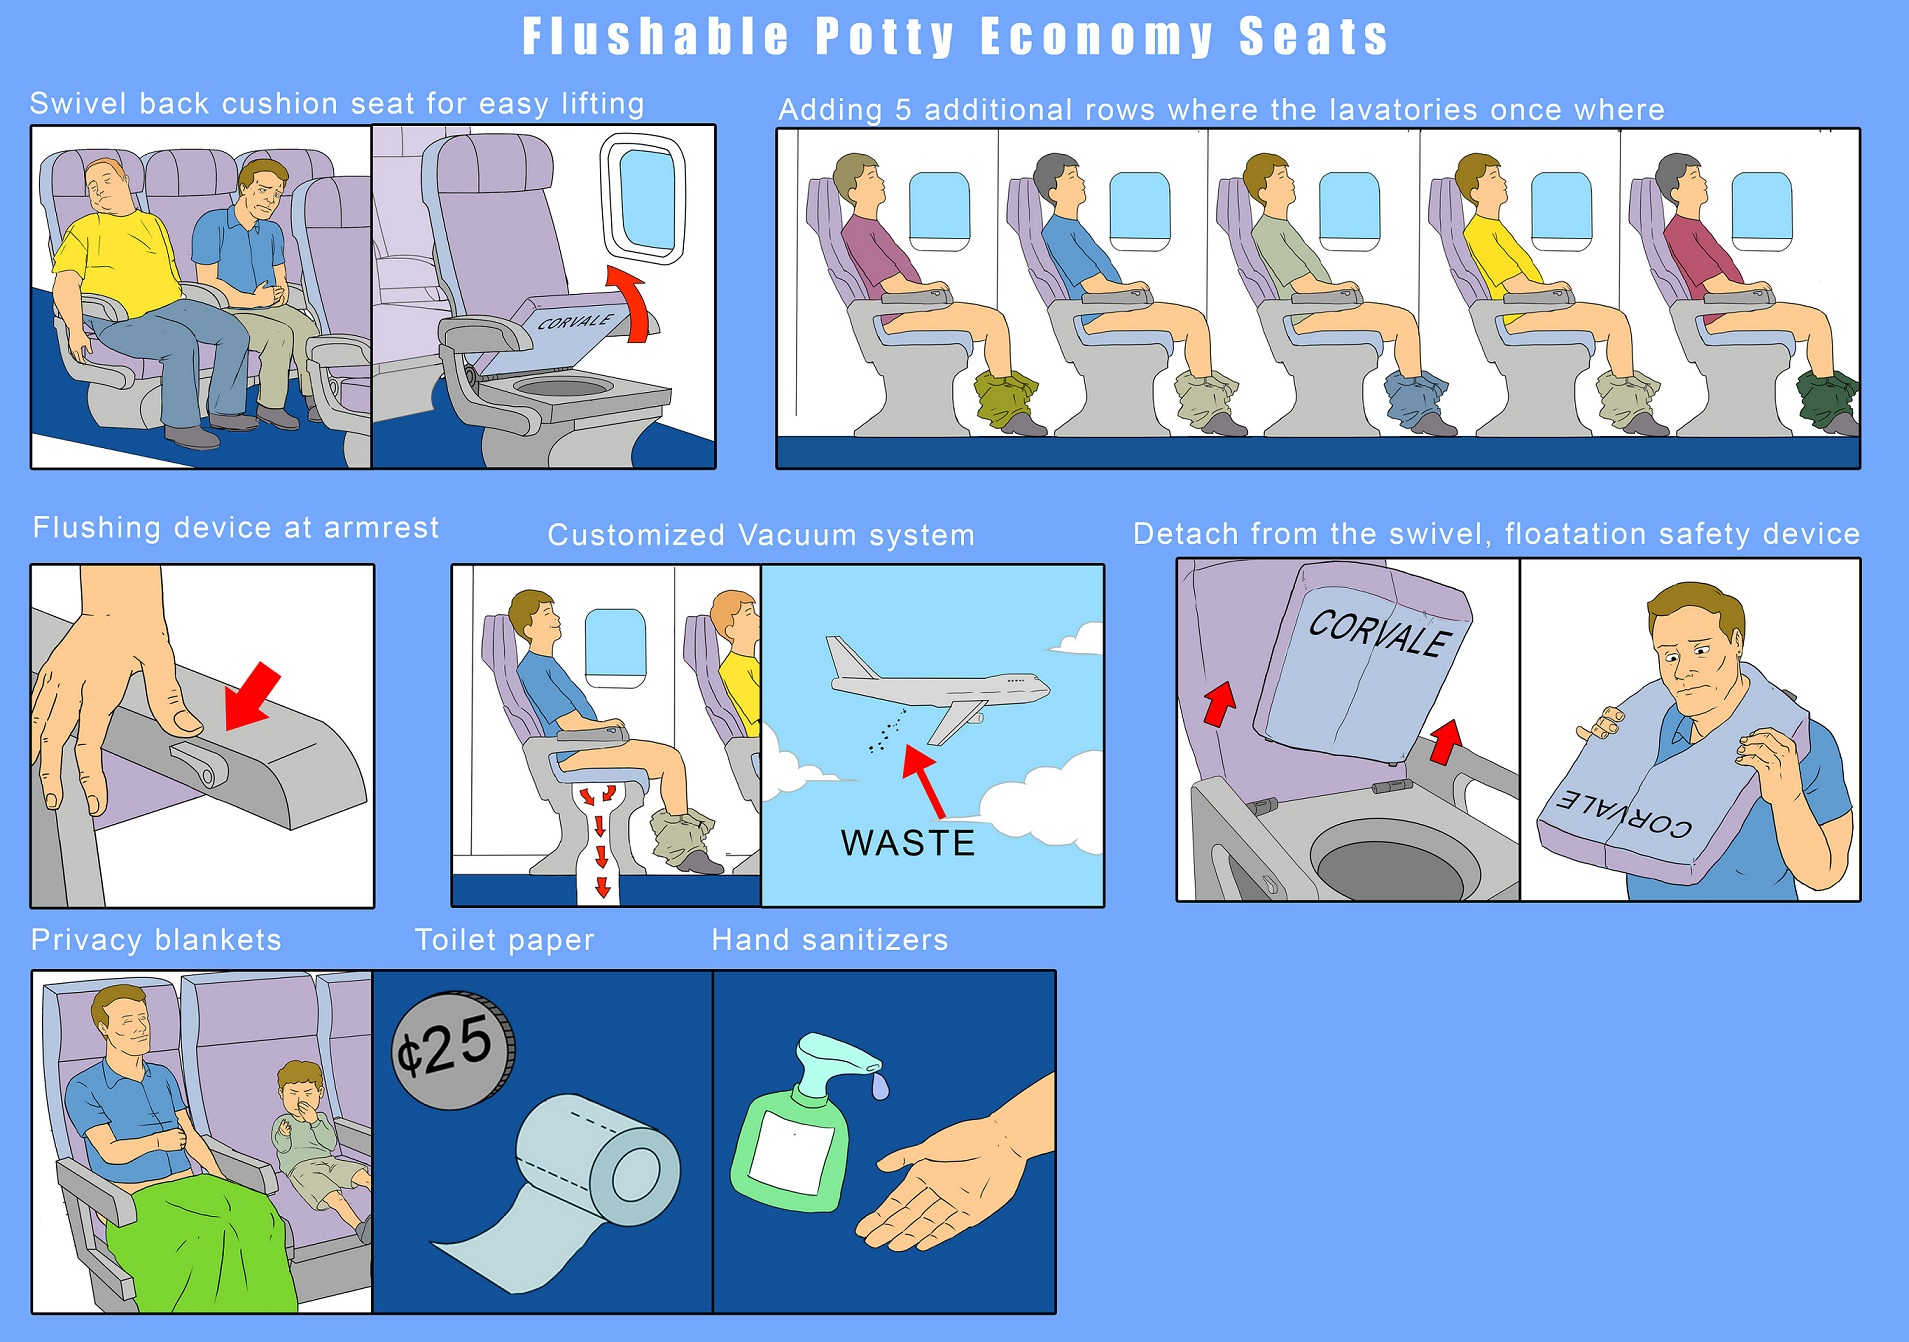 Flushable U.S Low Cost Airlines Excited to start Providing Flushable Potty Economy Seats